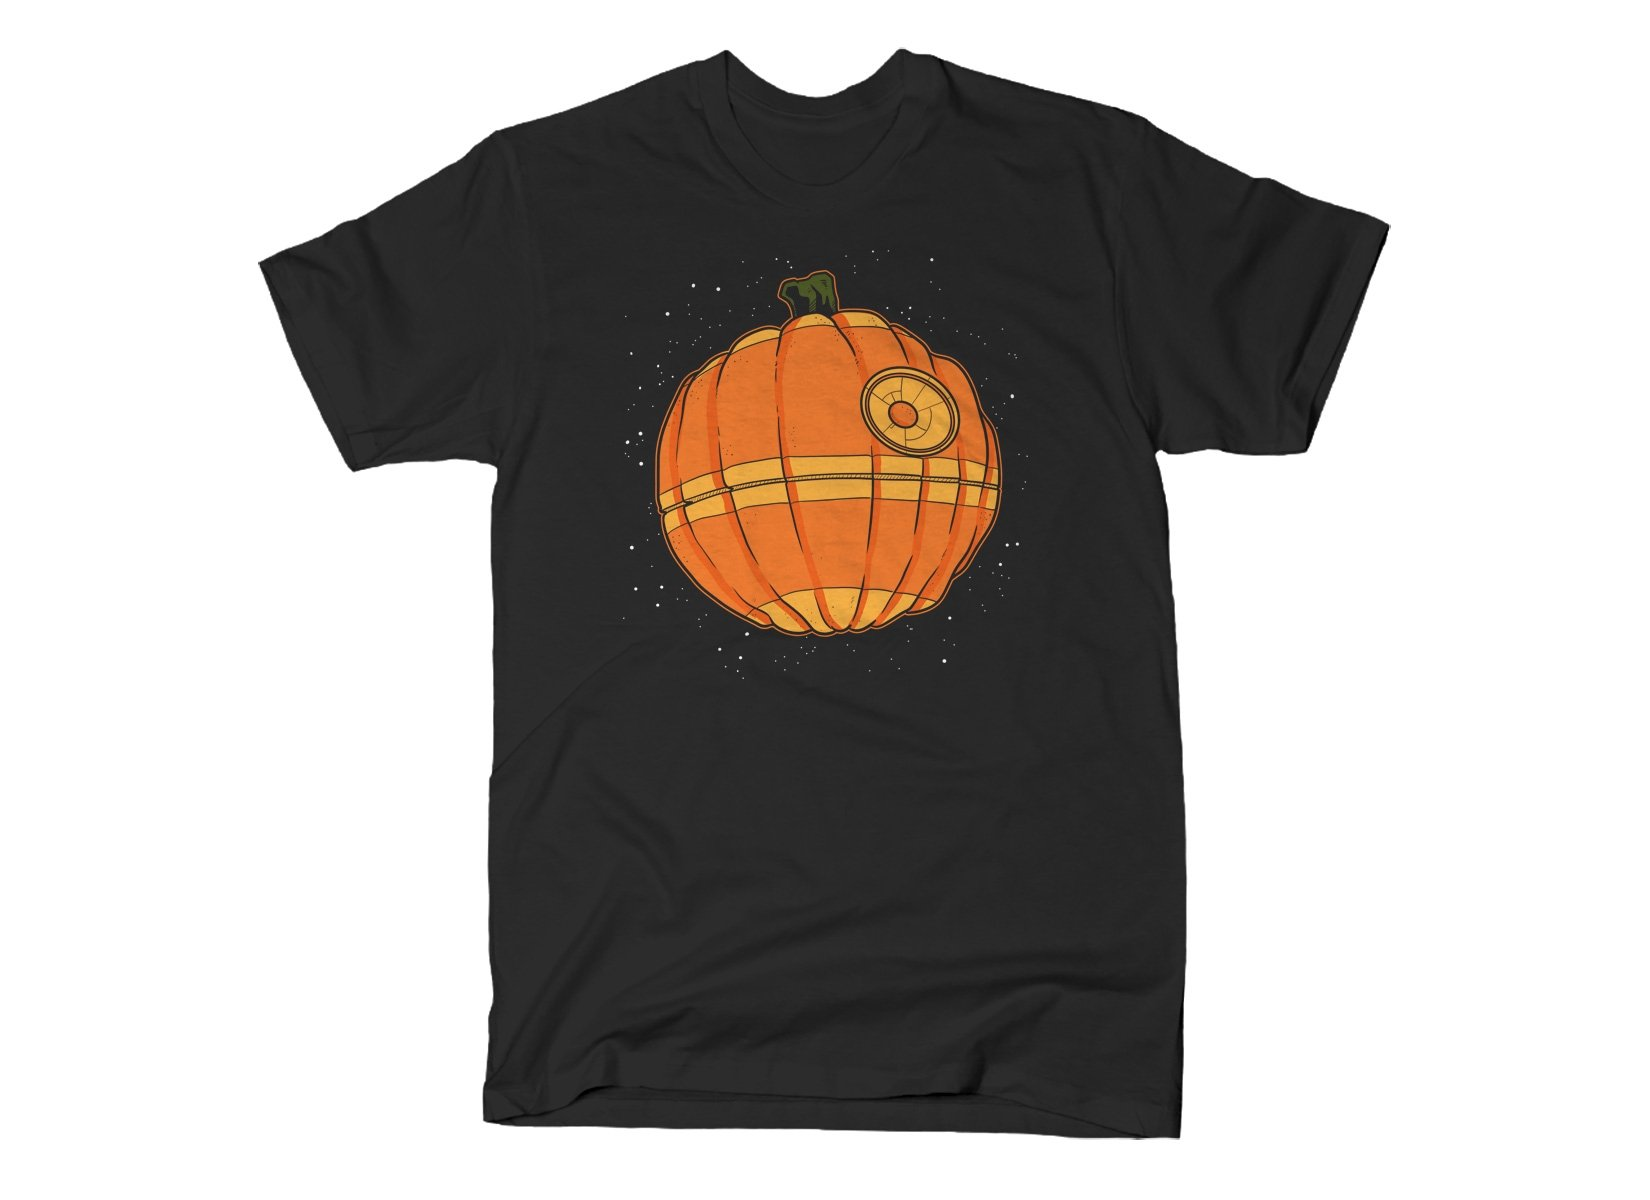 That's No Pumpkin on Mens T-Shirt